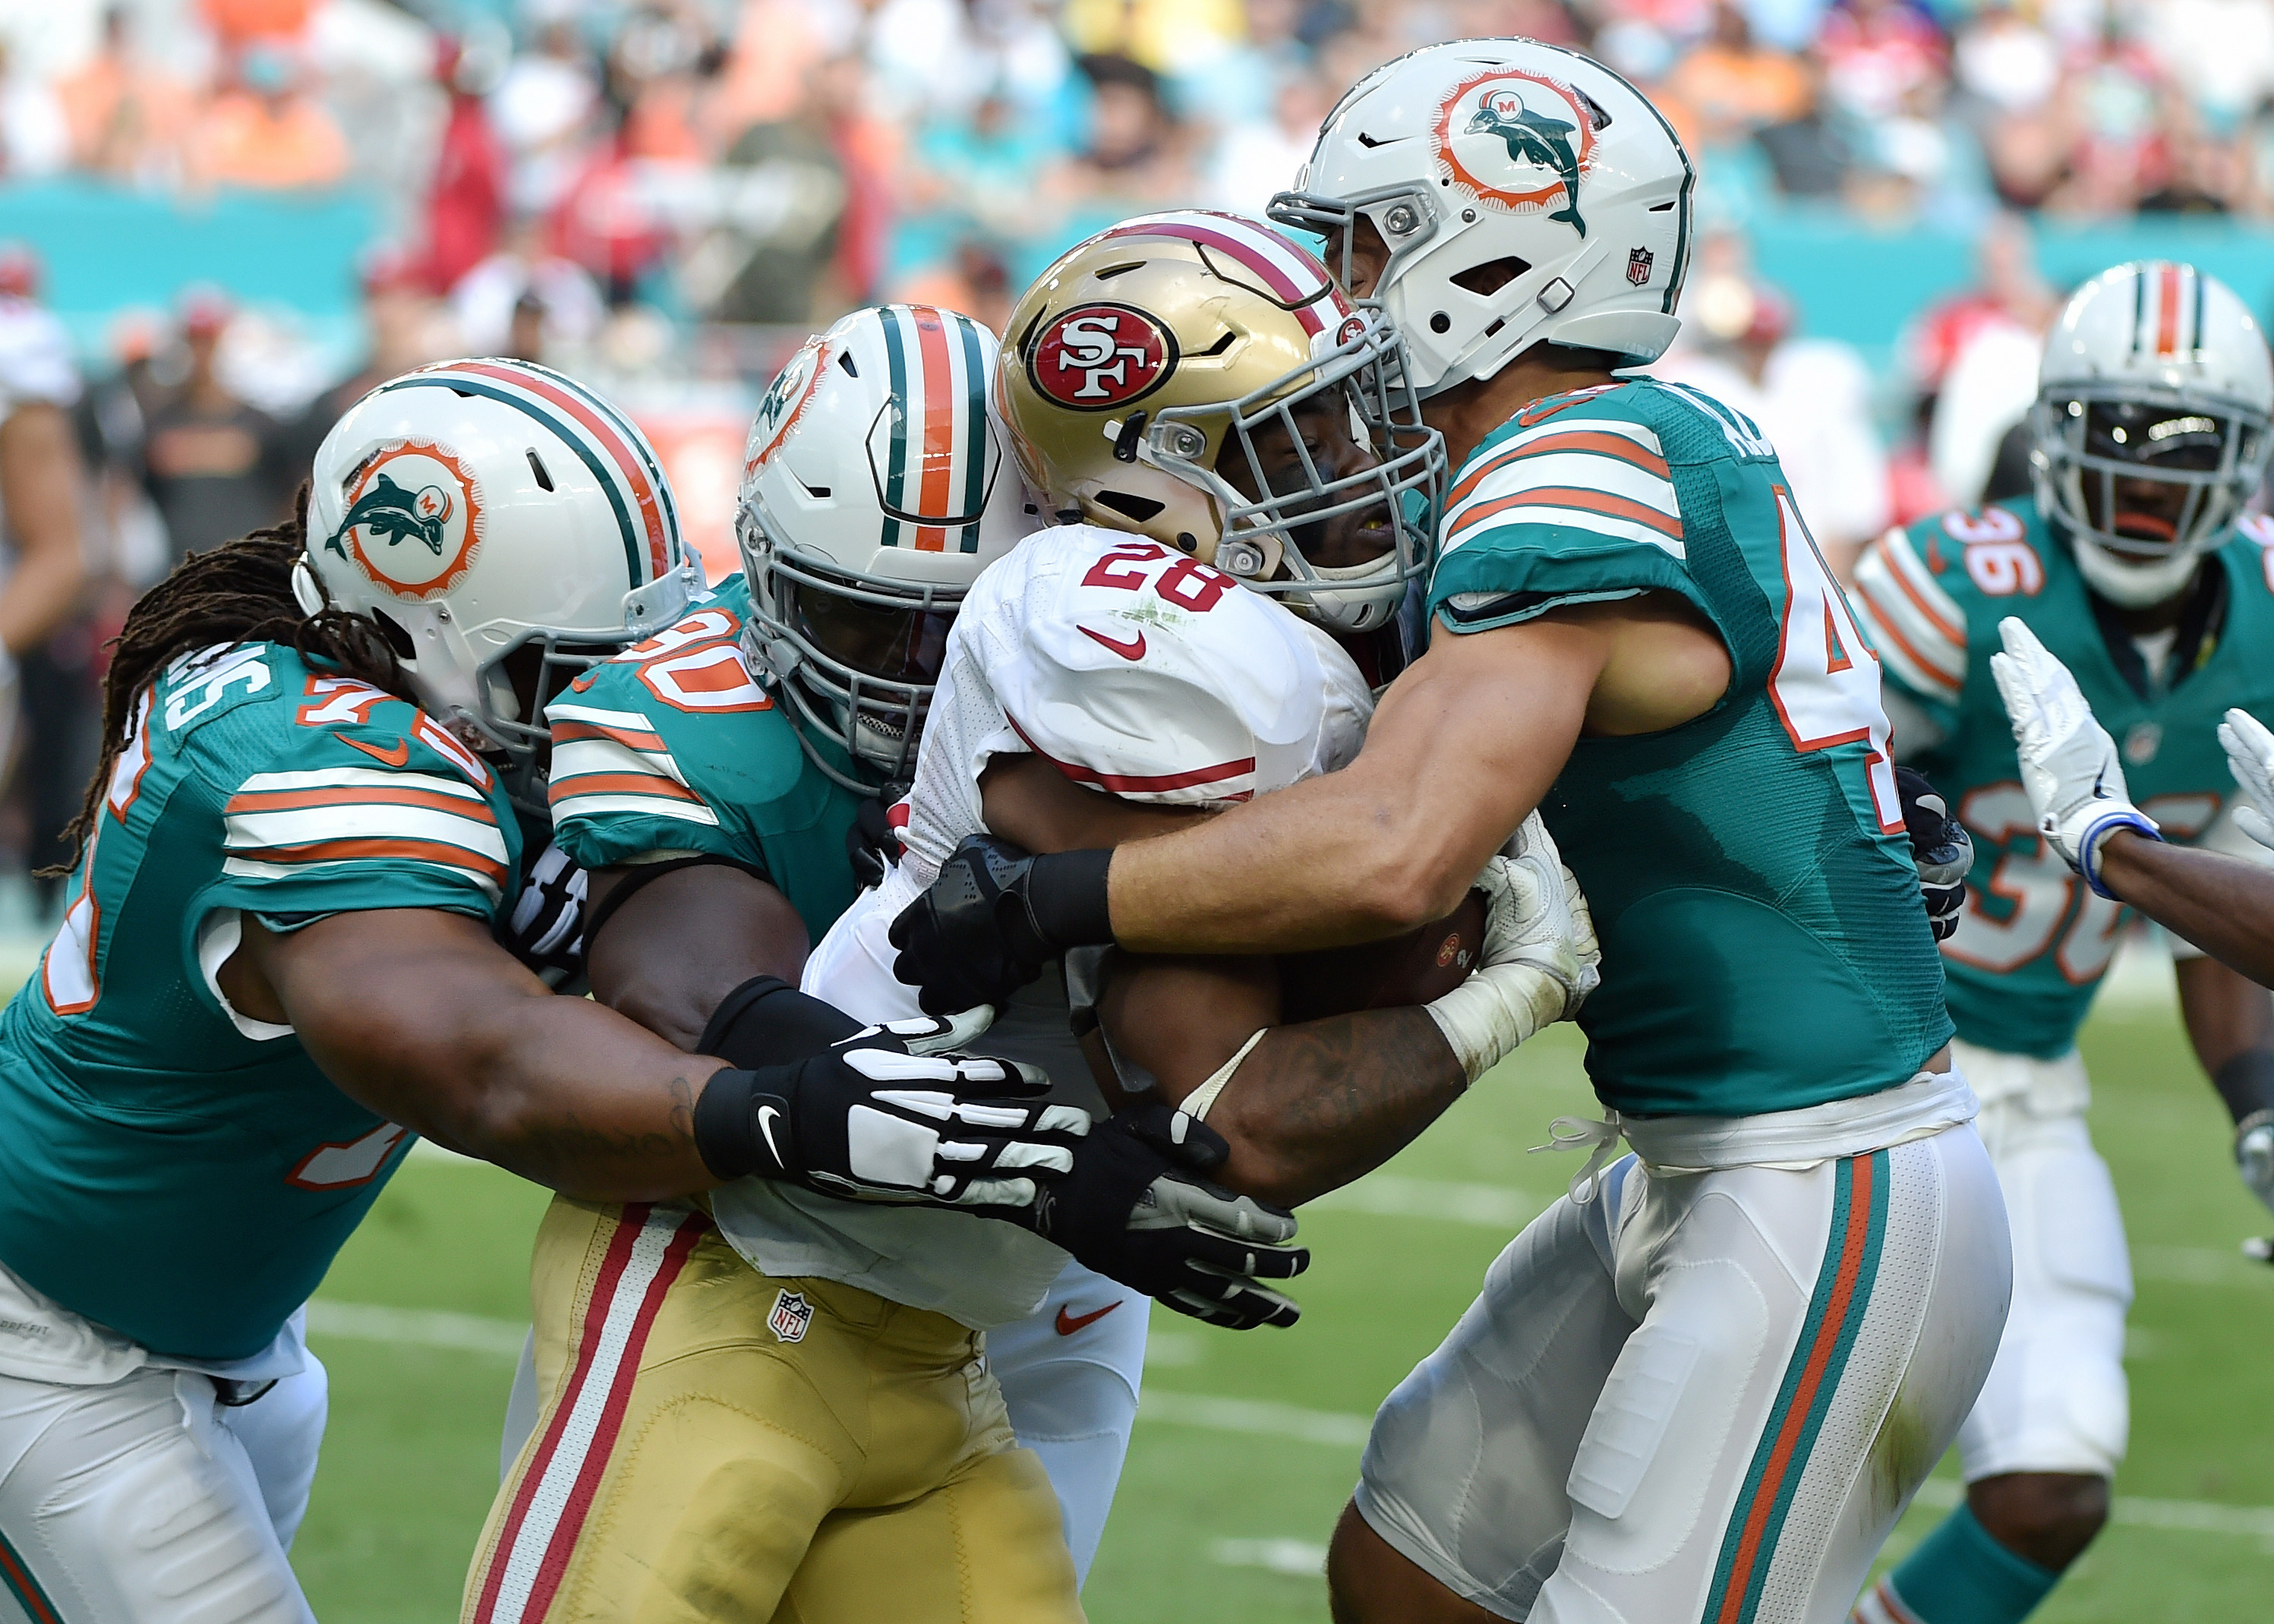 9708921-nfl-san-francisco-49ers-at-miami-dolphins